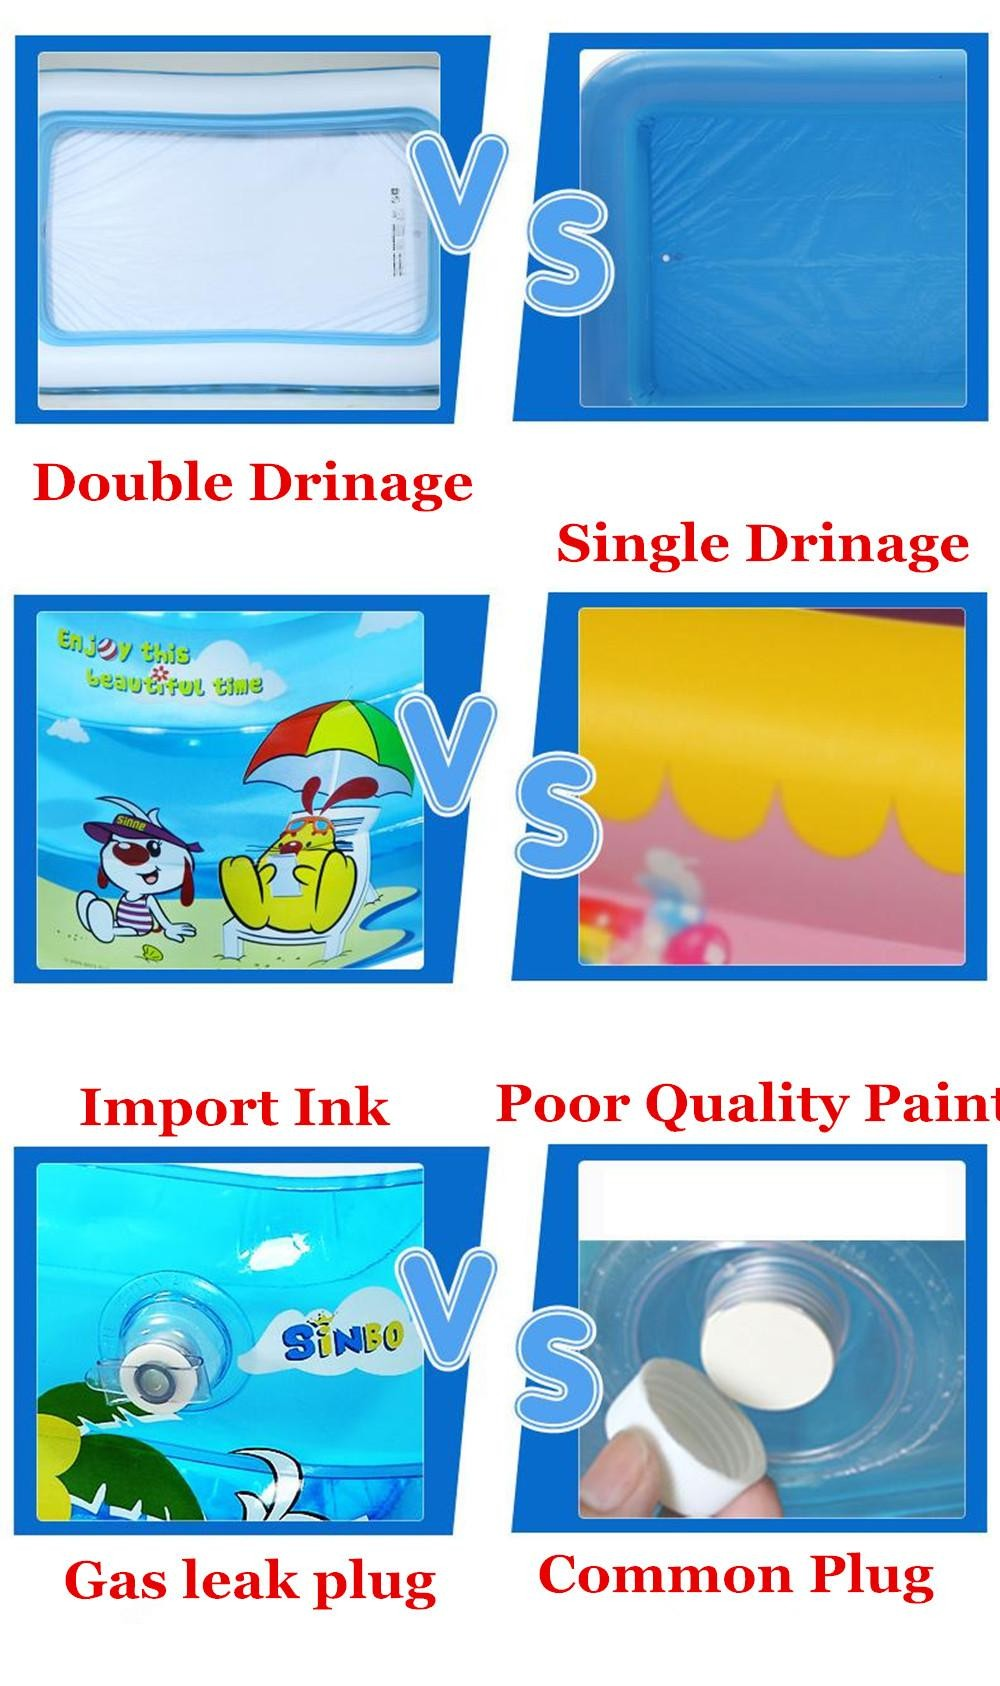 import ink 1